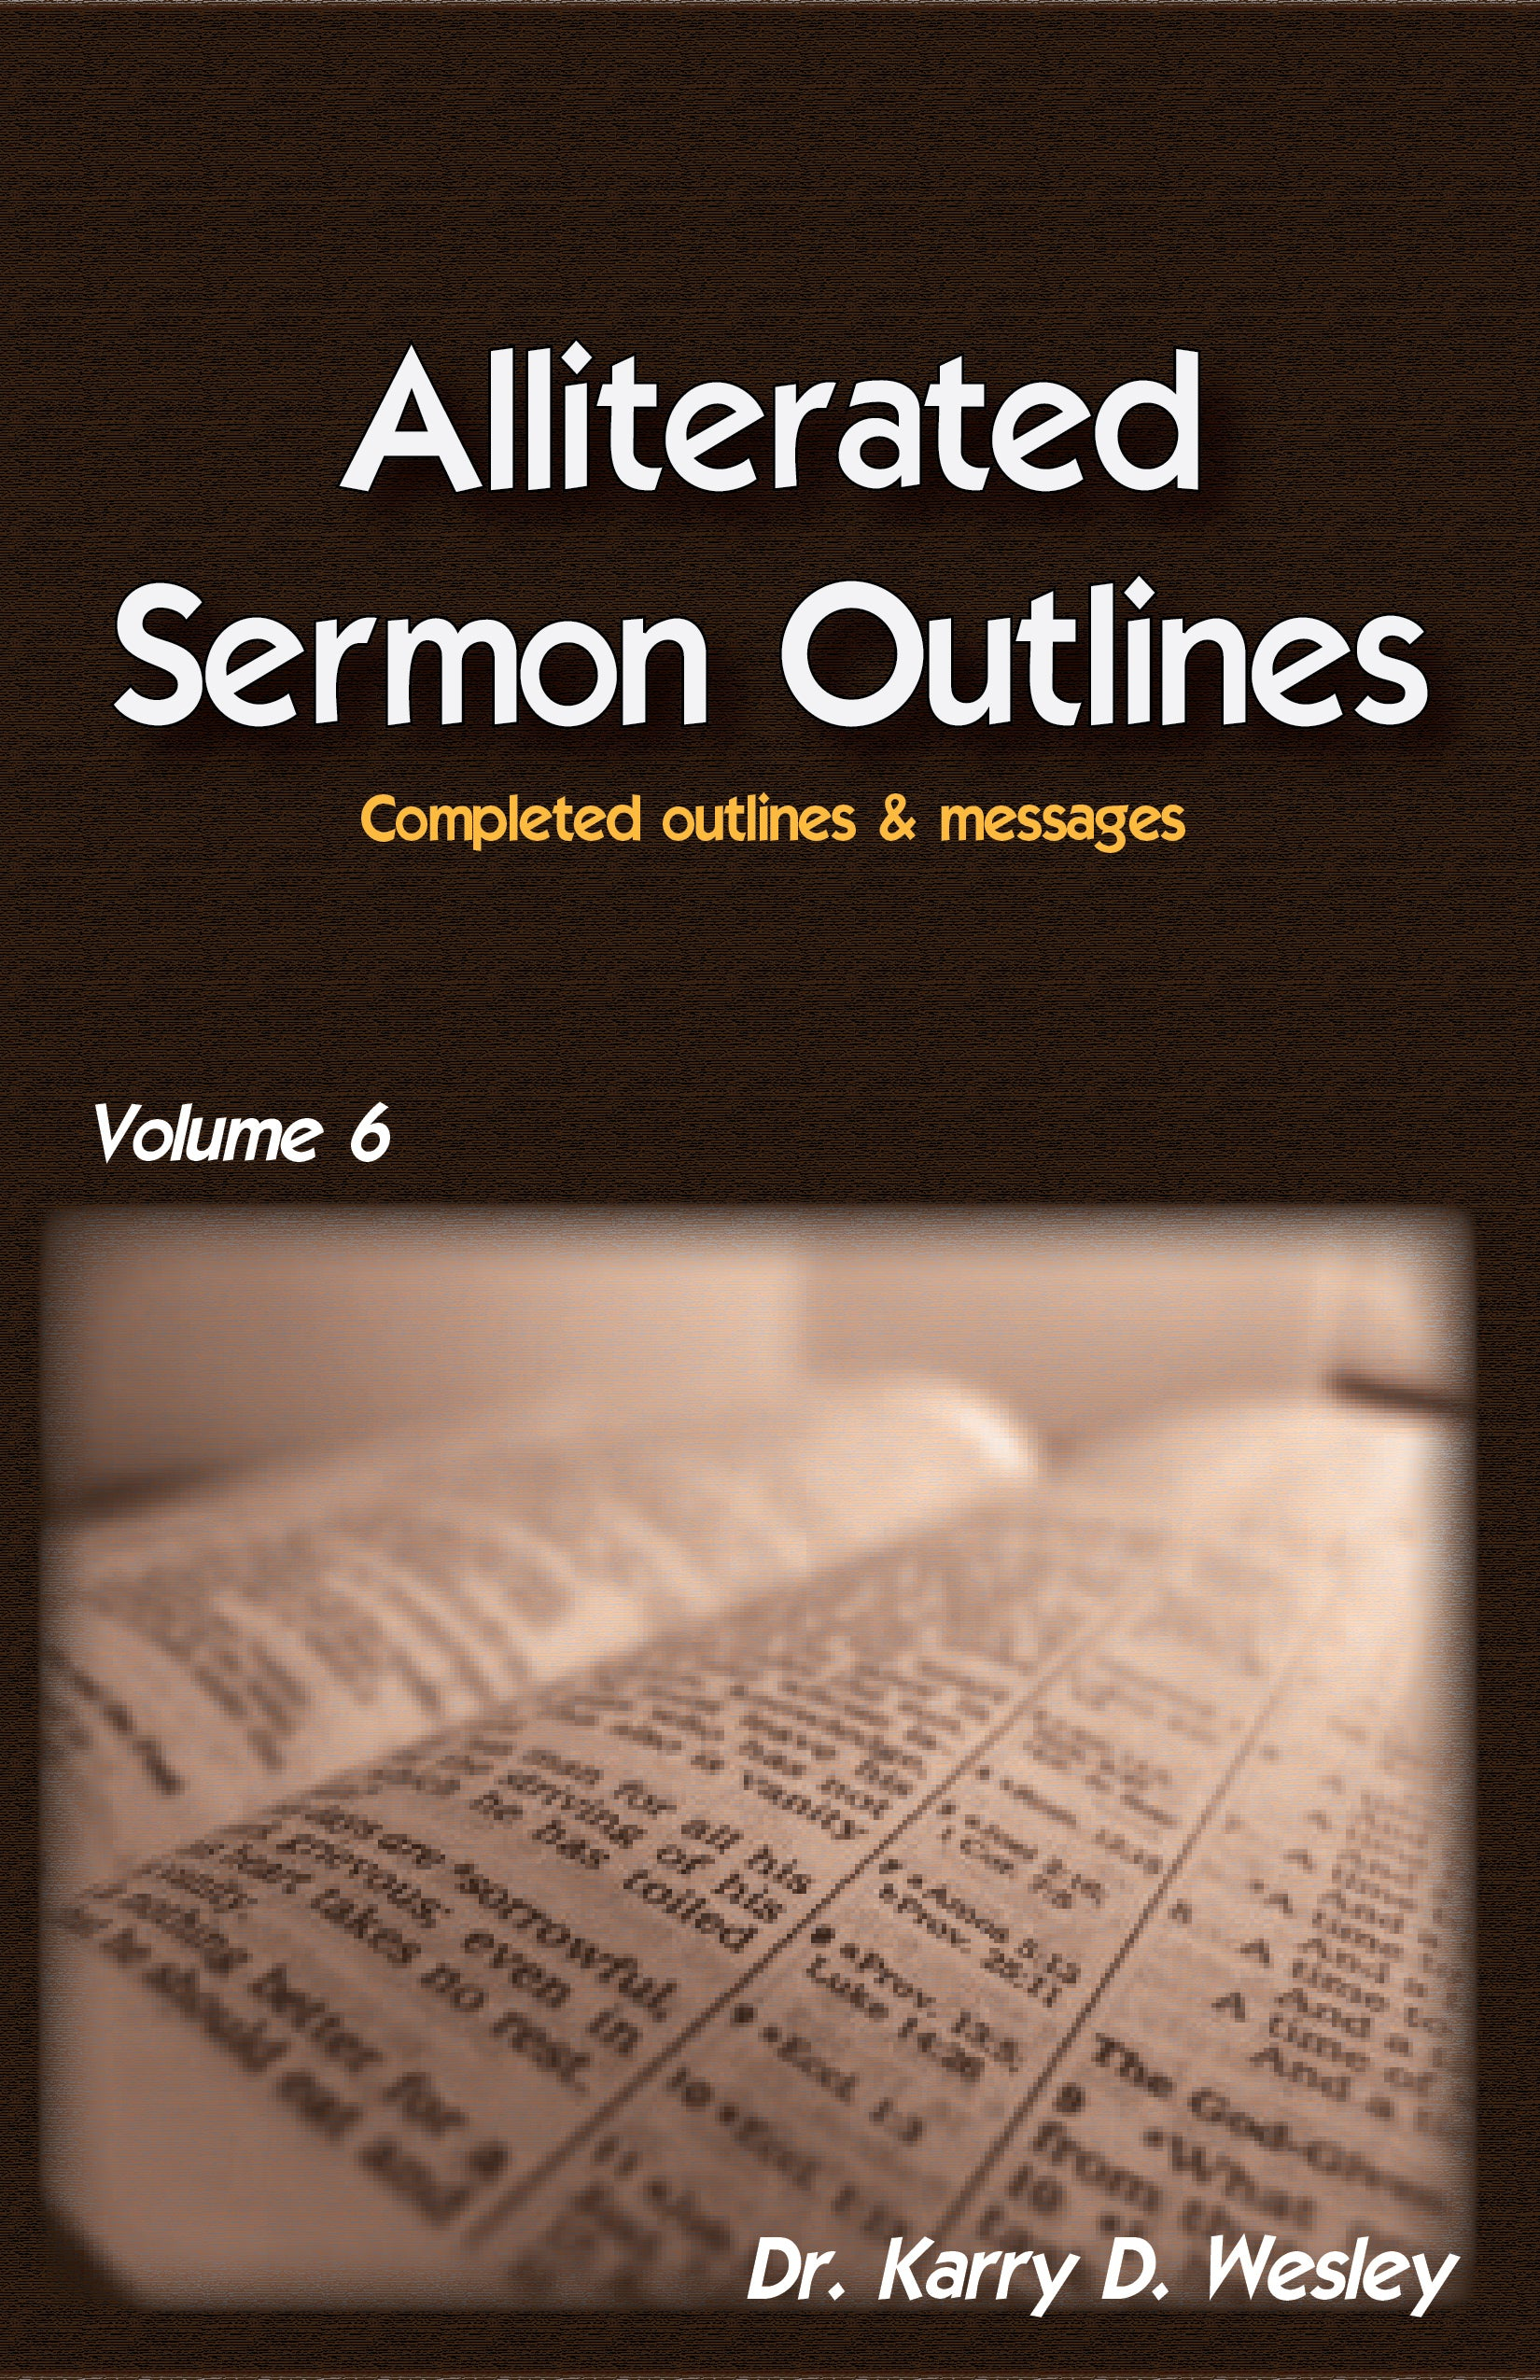 Alliterated Sermons - Volume 6